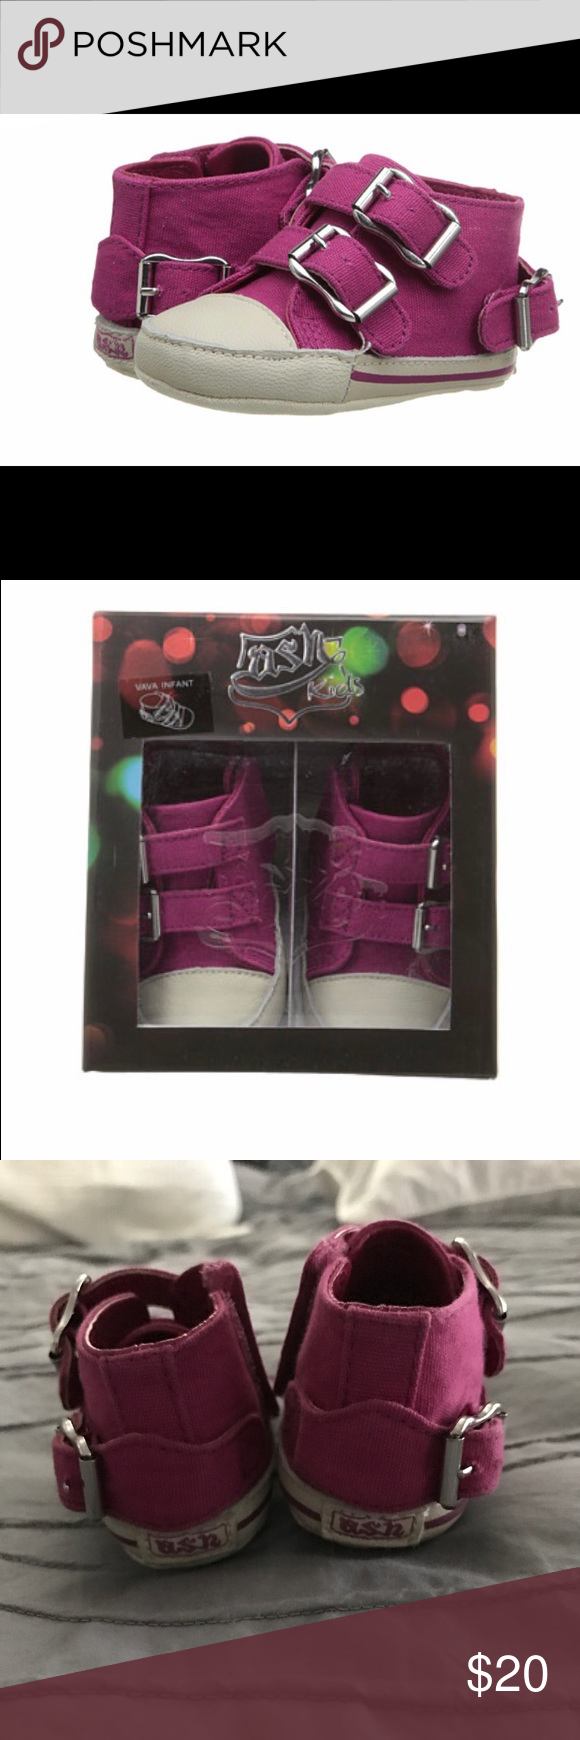 1444cae248 Ash kids size 2 sneakers Infant size 2 Ash kids sneakers in EUC. They have  been worn a handful of times by a non walker. They have great details and  Velcro ...